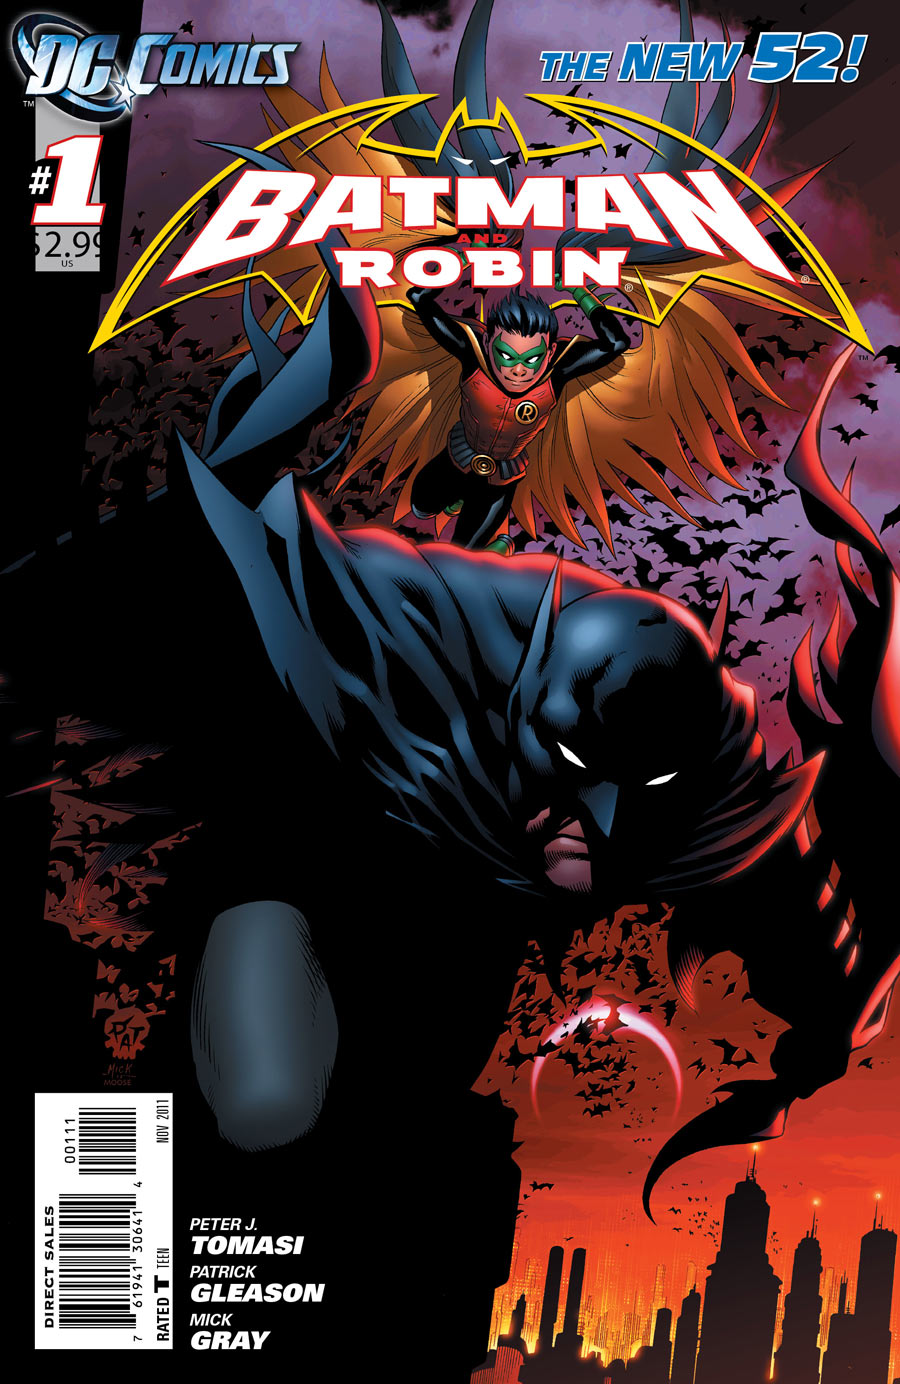 Batman and Robin #1 cover